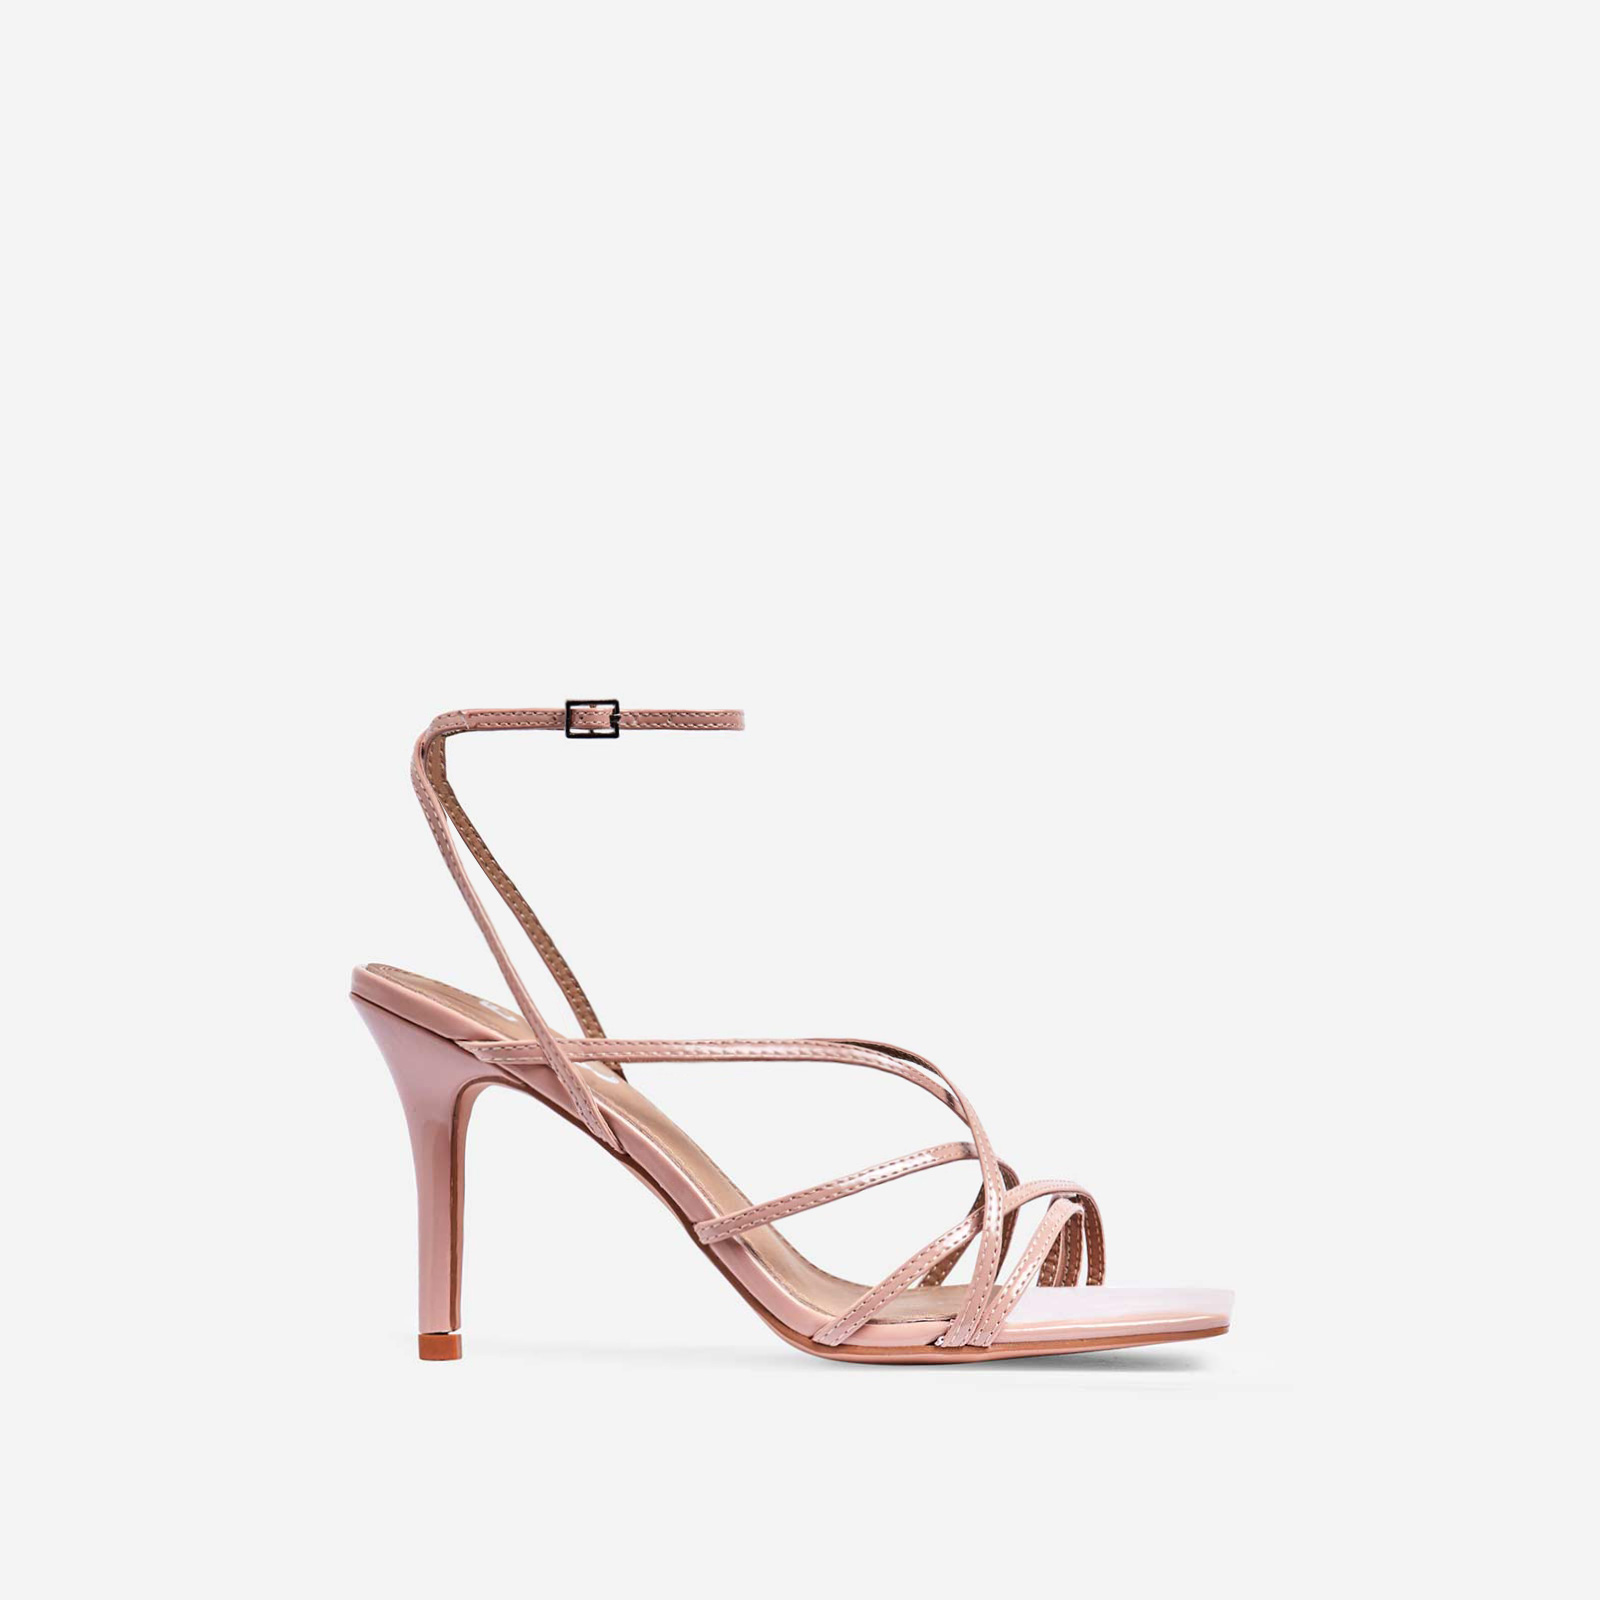 Shade Square Toe Strappy Kitten Heel In Nude Patent